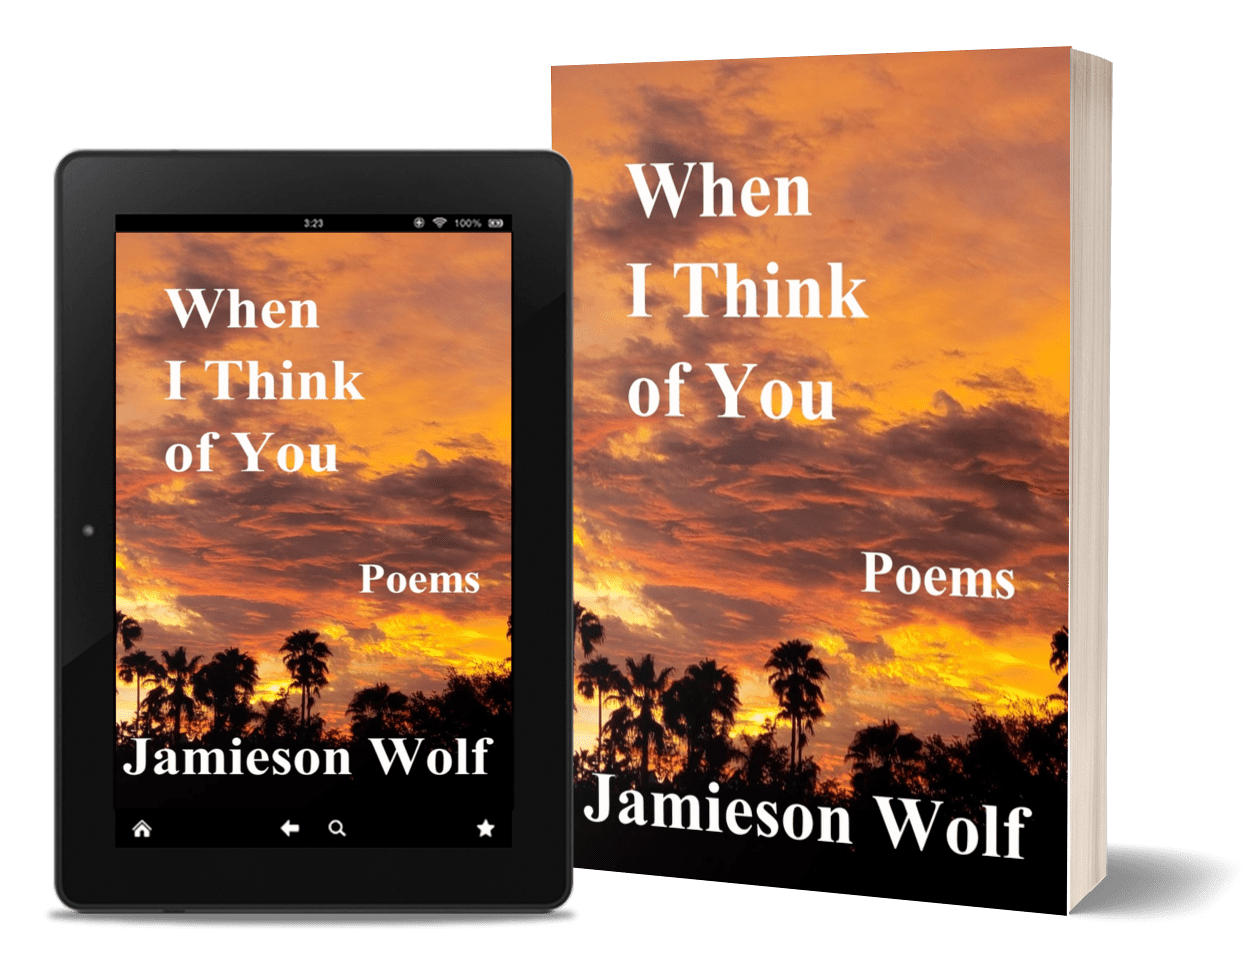 Image description: Tablet featuring ebook and a paperback copy of When I Think of You